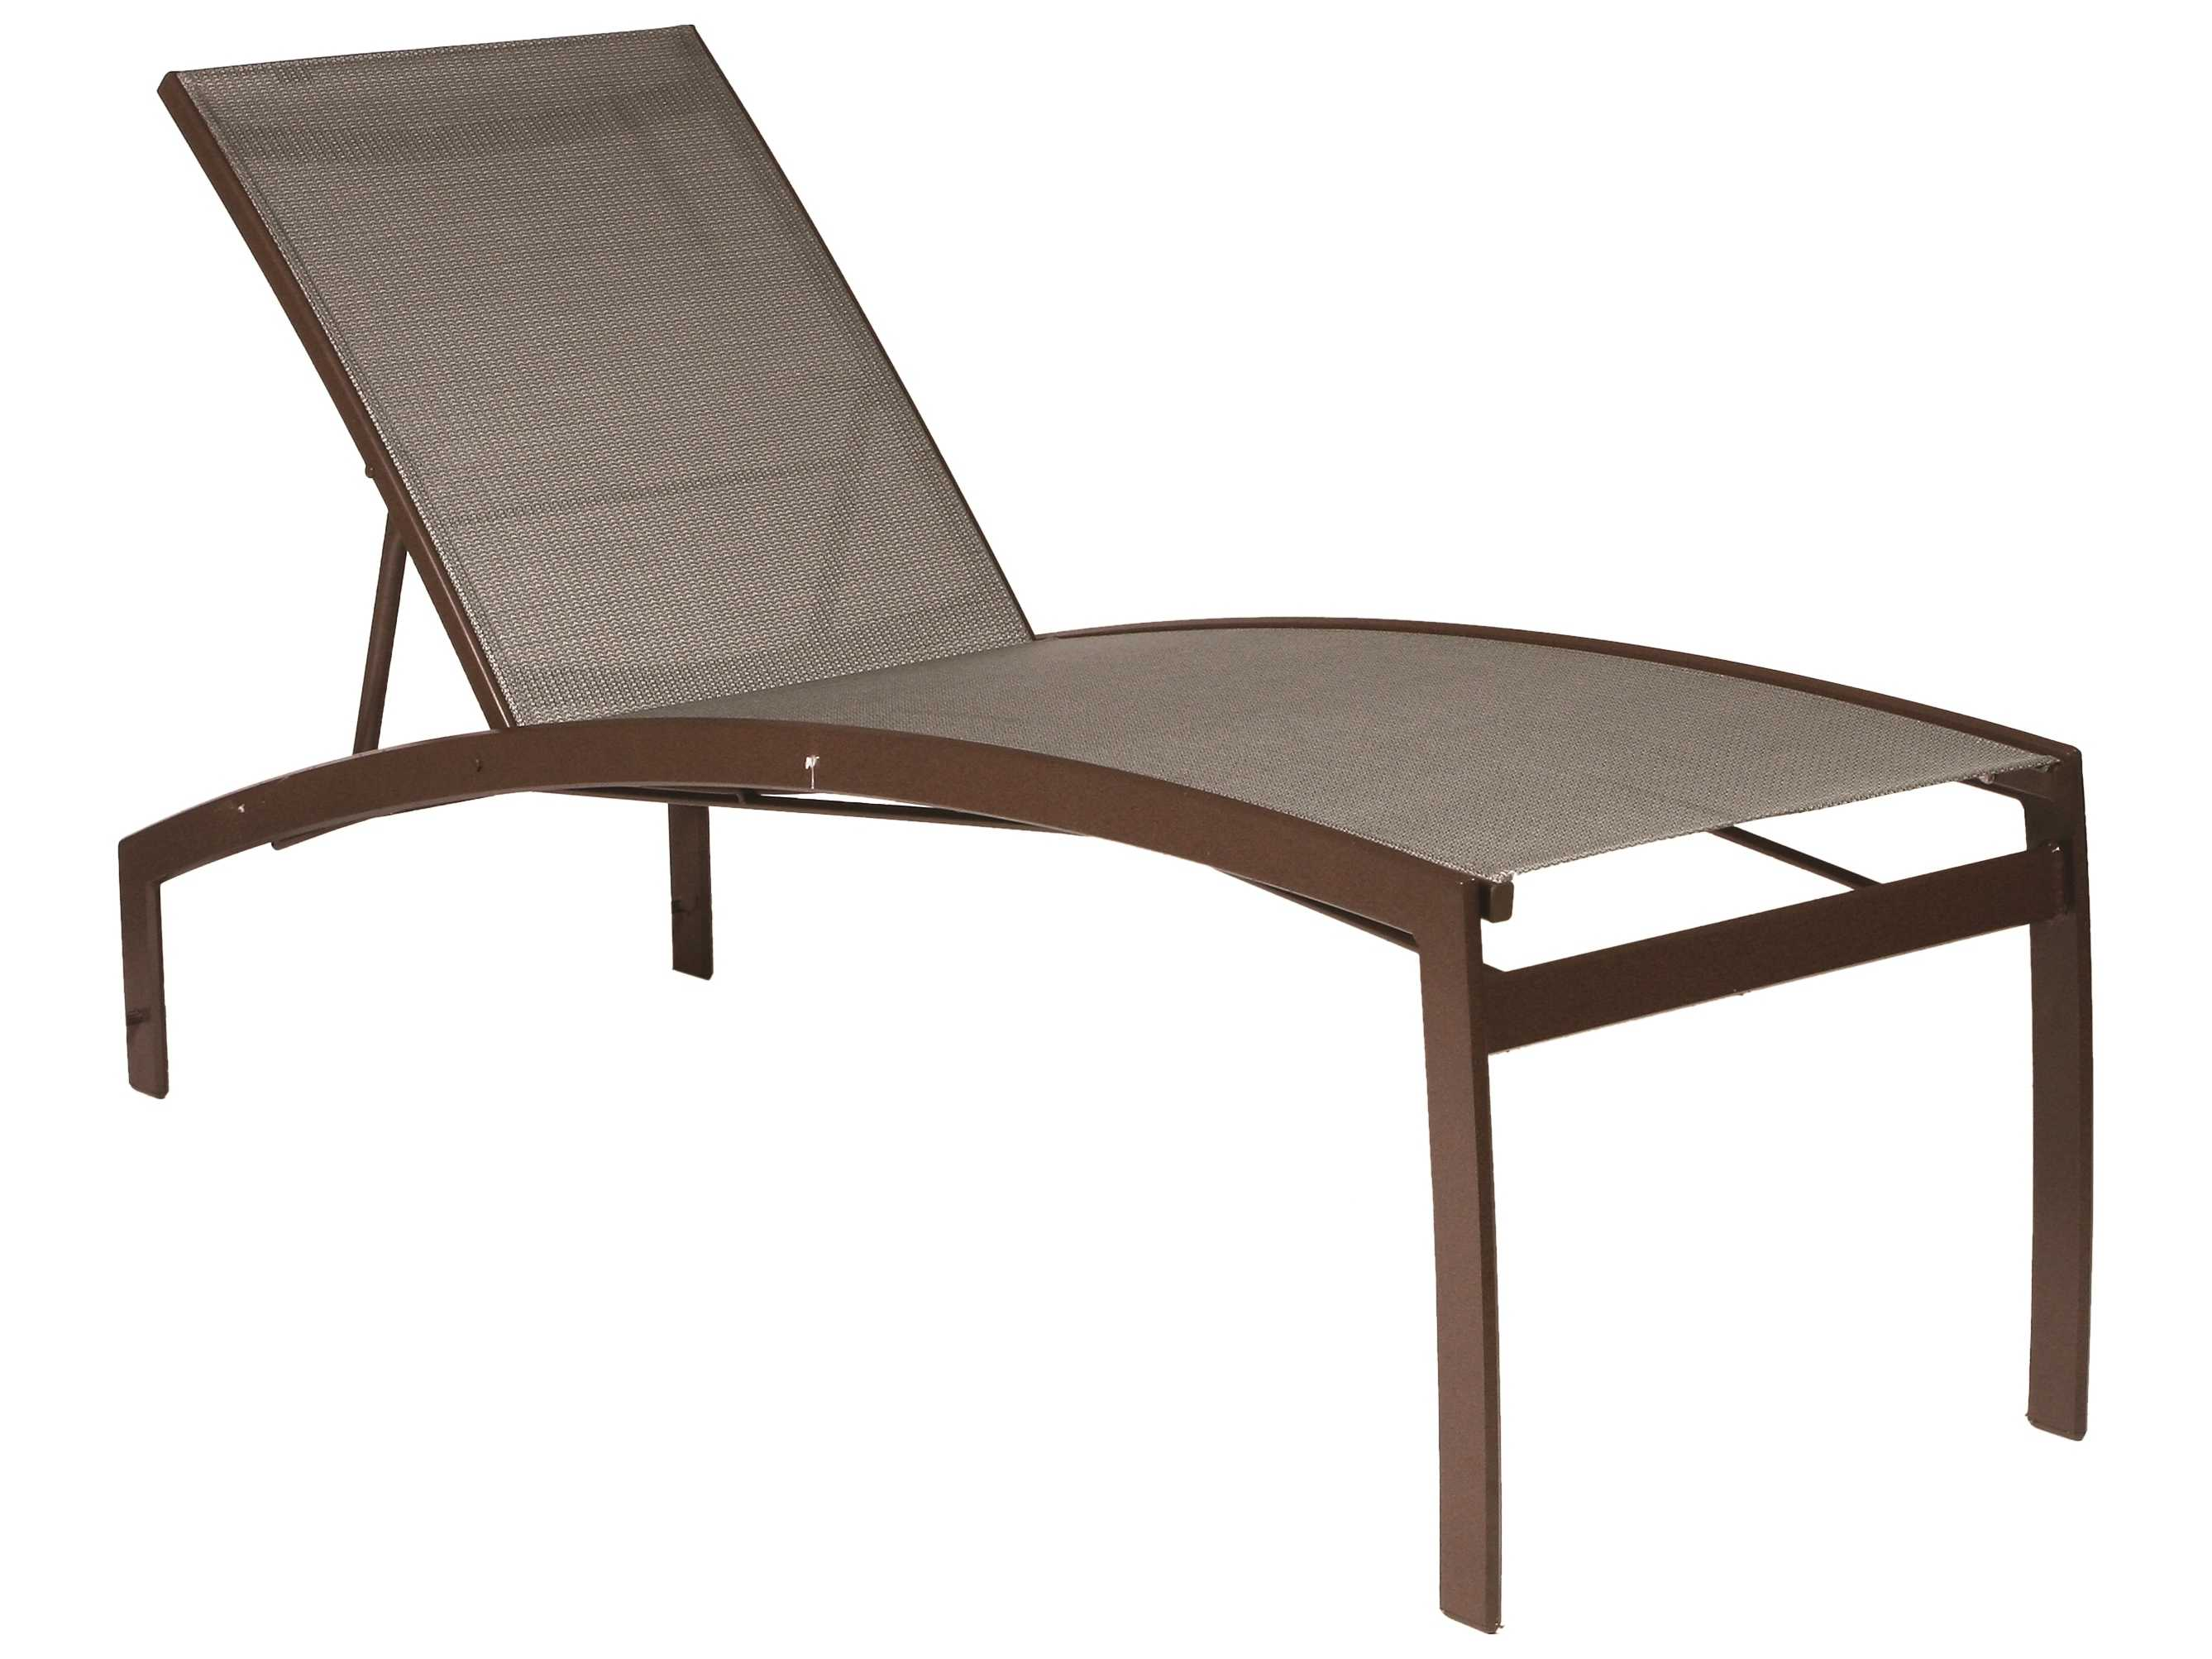 Suncoast vision sling cast aluminum chaise lounge 7991 for Aluminum chaise lounges